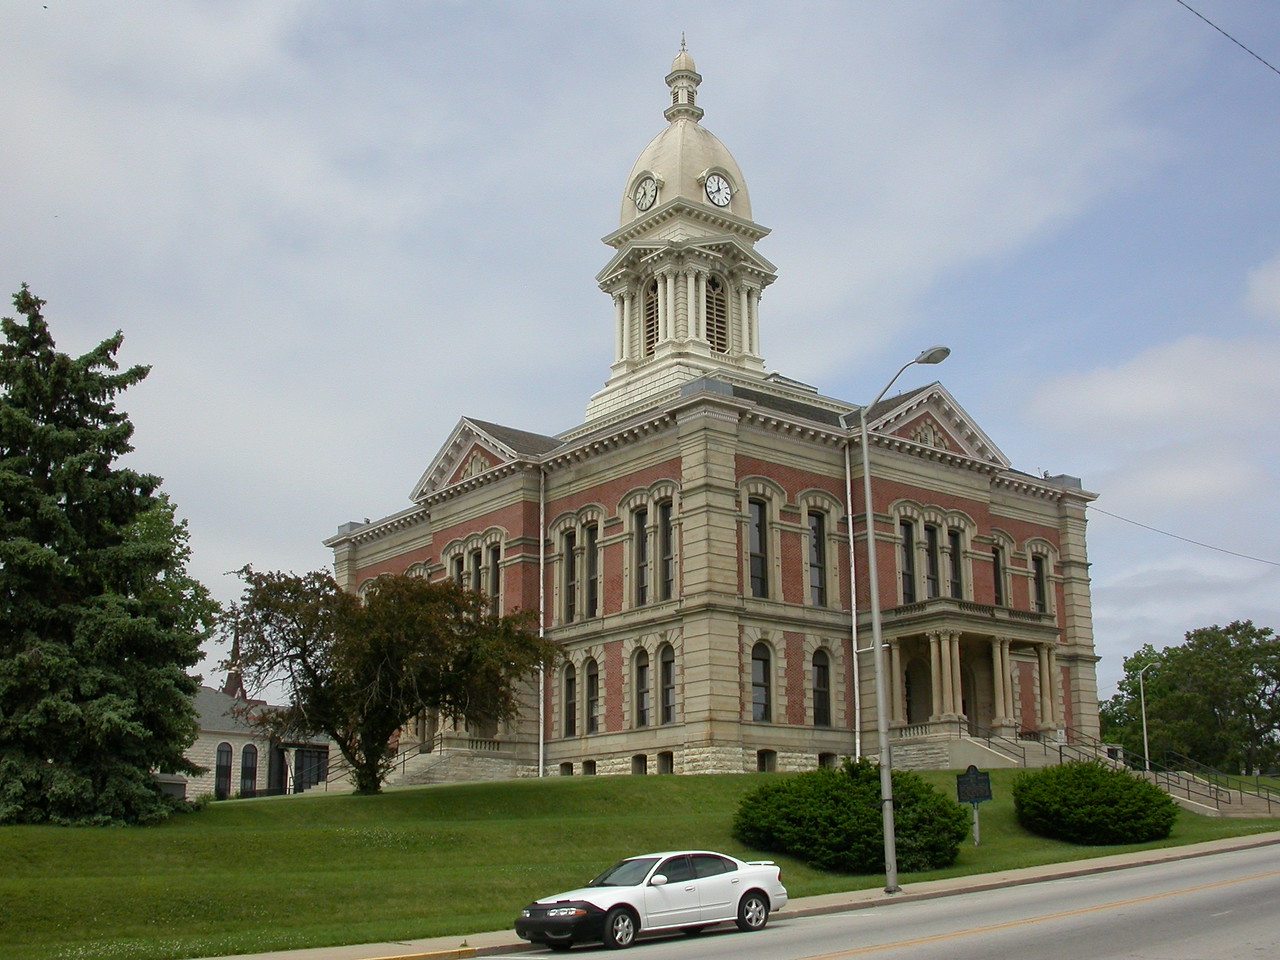 Wabash County Courthouse, Wabash, Indiana, May 2004.